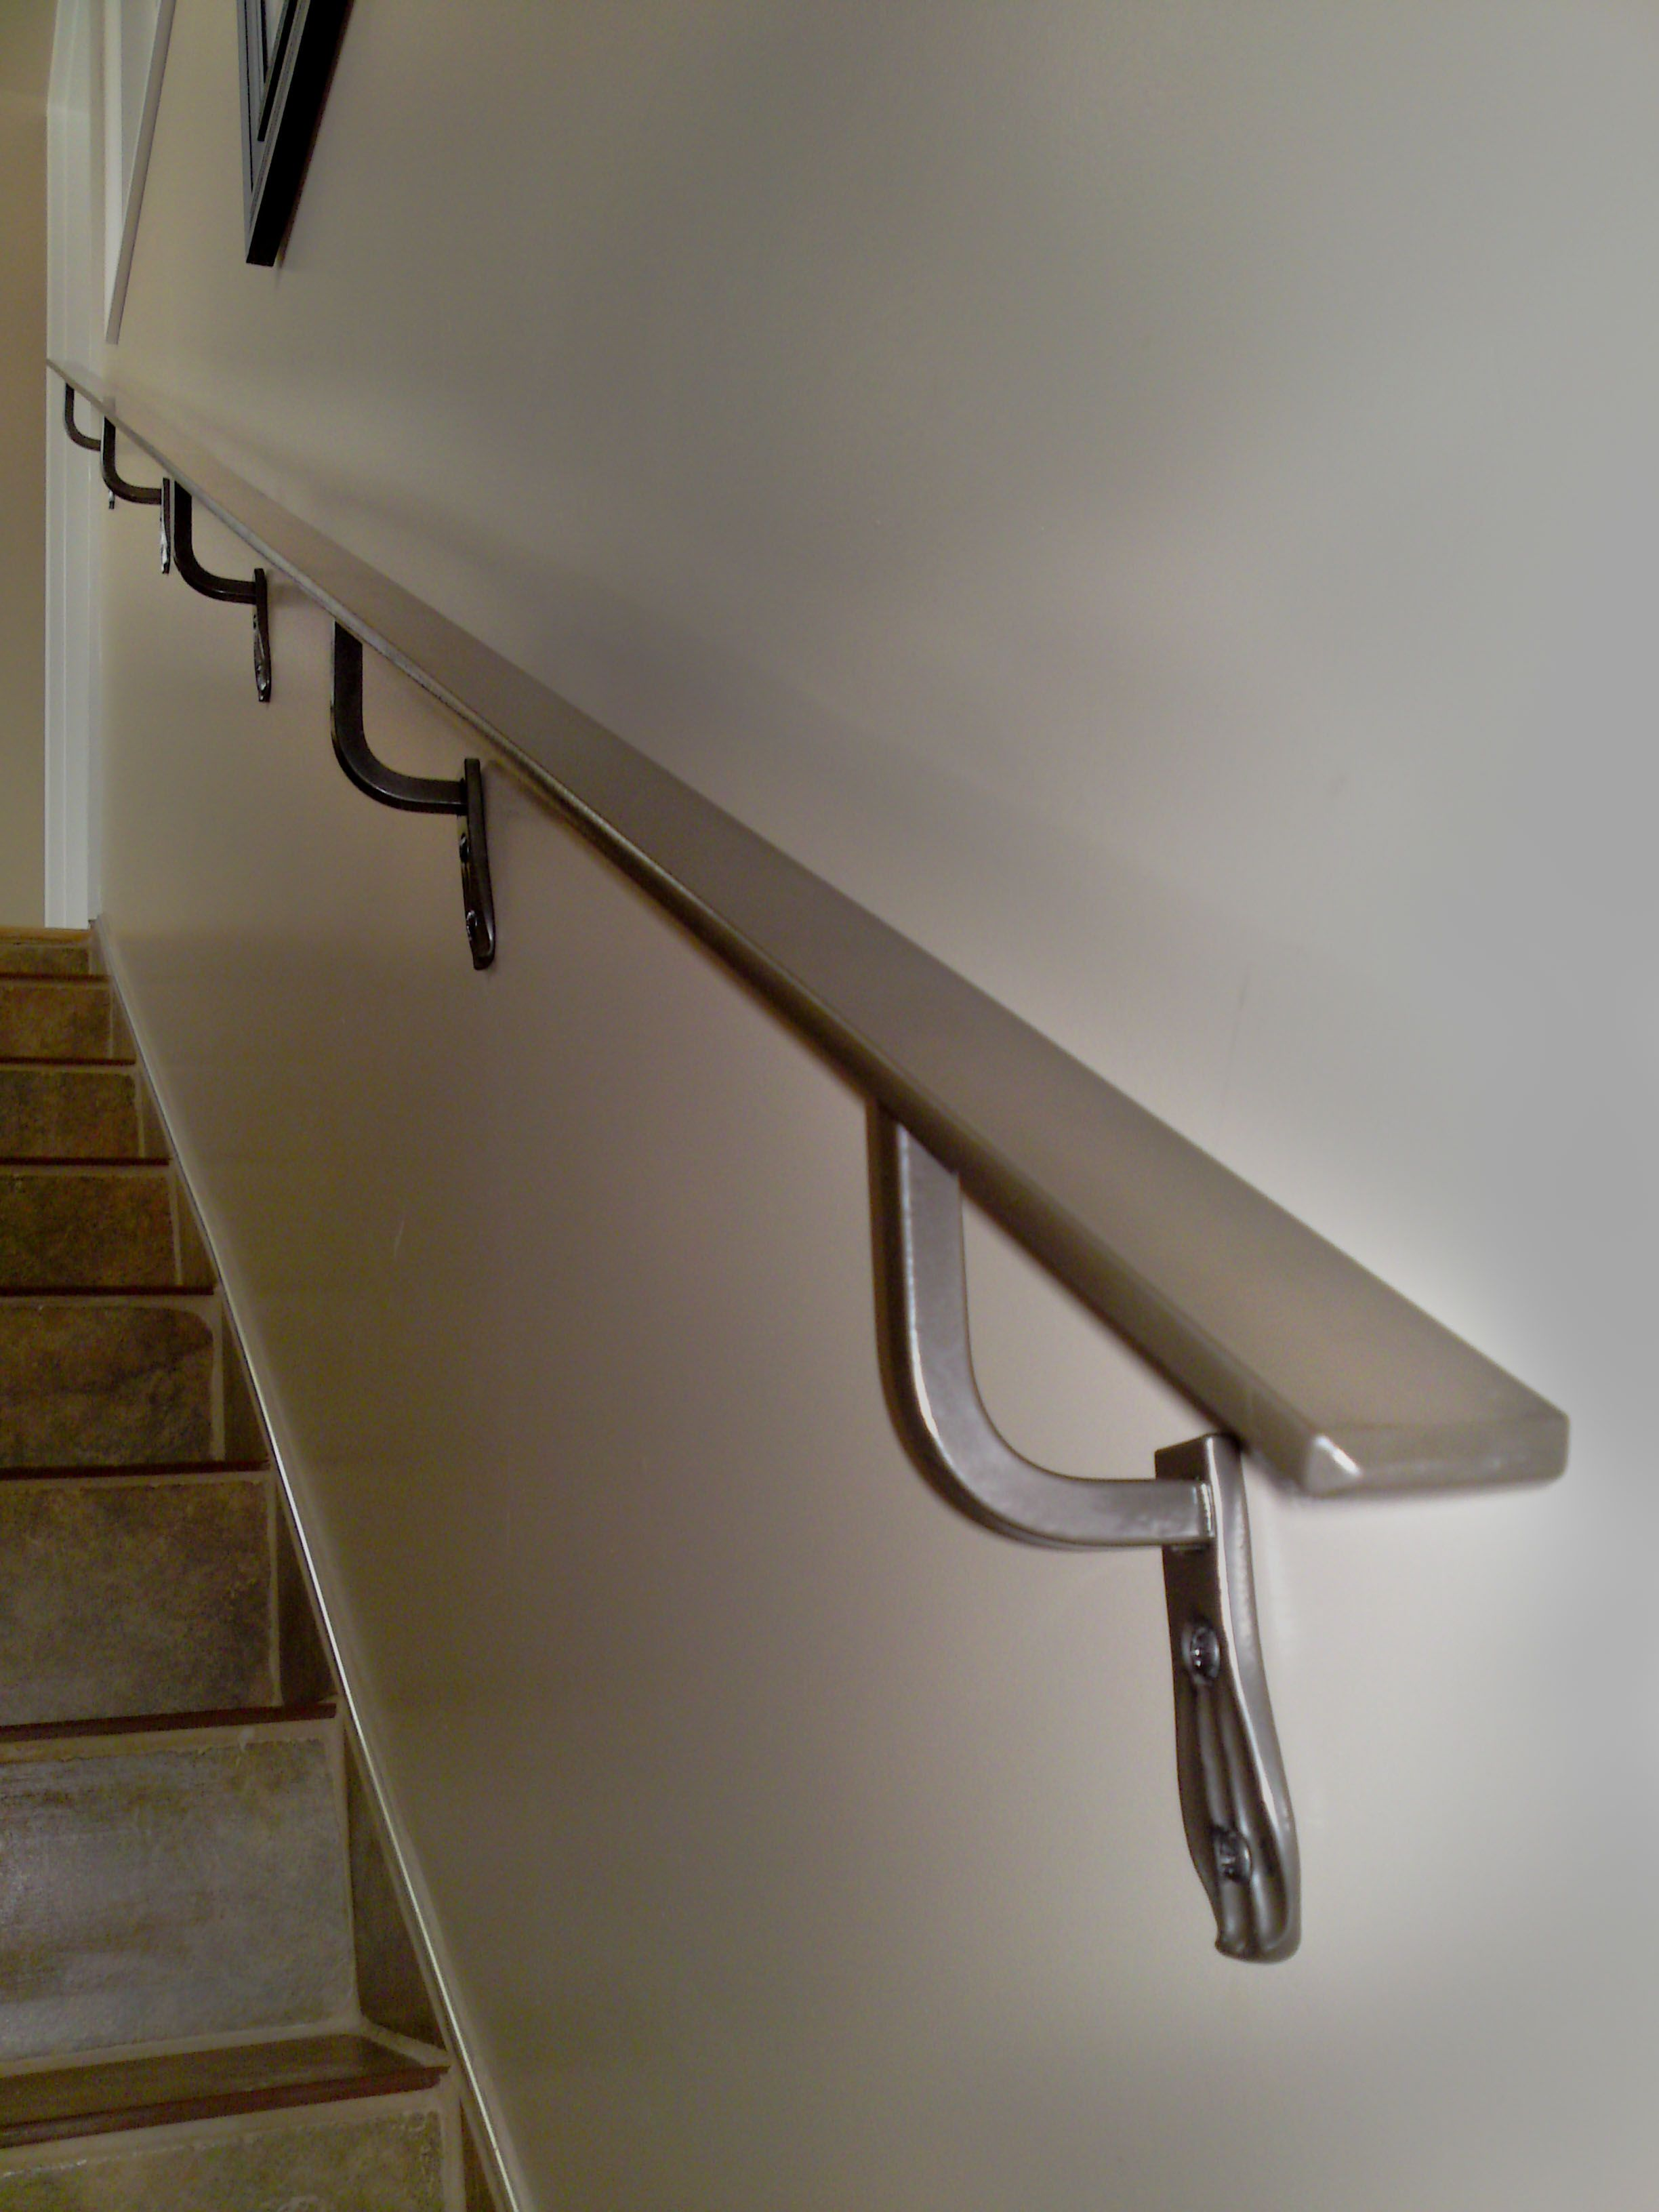 Shining Wall Mounted Handrails - MyHomeImprovement | New ...